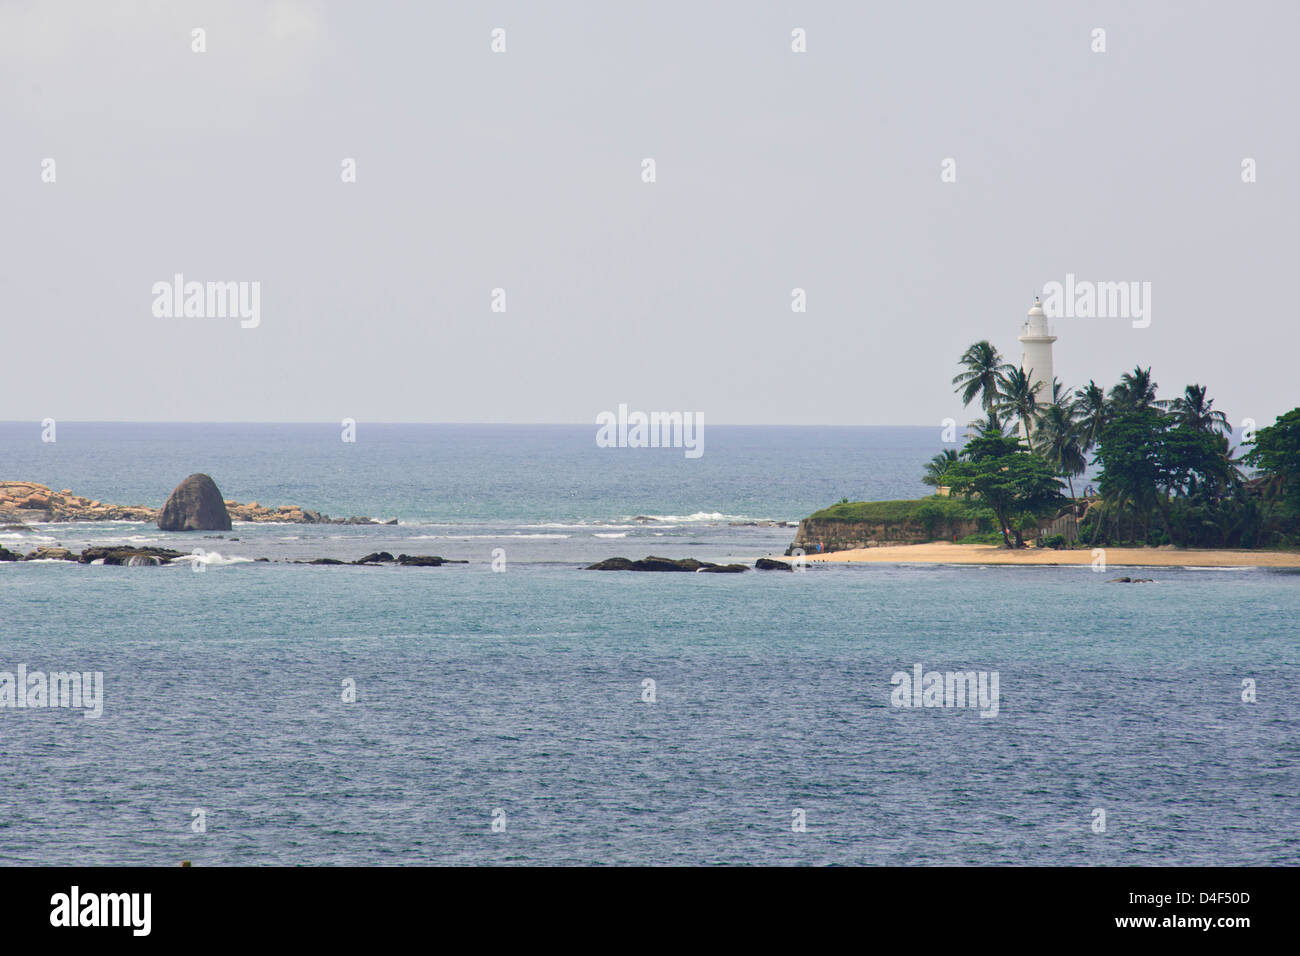 Lighthouse Beach,Harbour,Entrance,On 26 December 2004 the city was devastated by the massive Boxing Day Tsunami,Galle,Sri - Stock Image